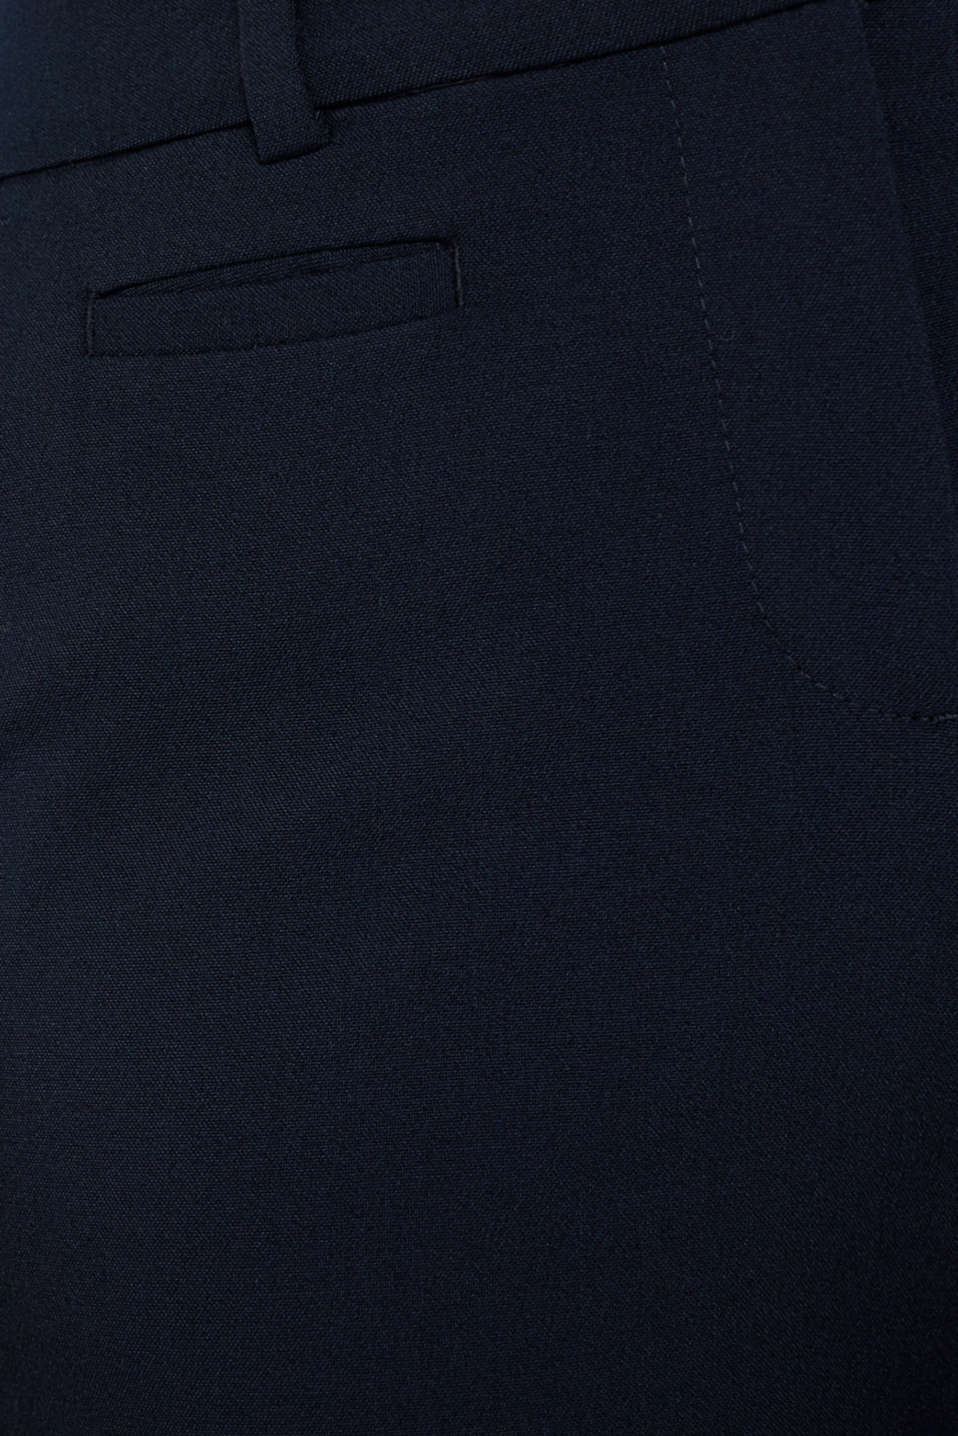 Business trousers with stretch for comfort, NAVY, detail image number 1